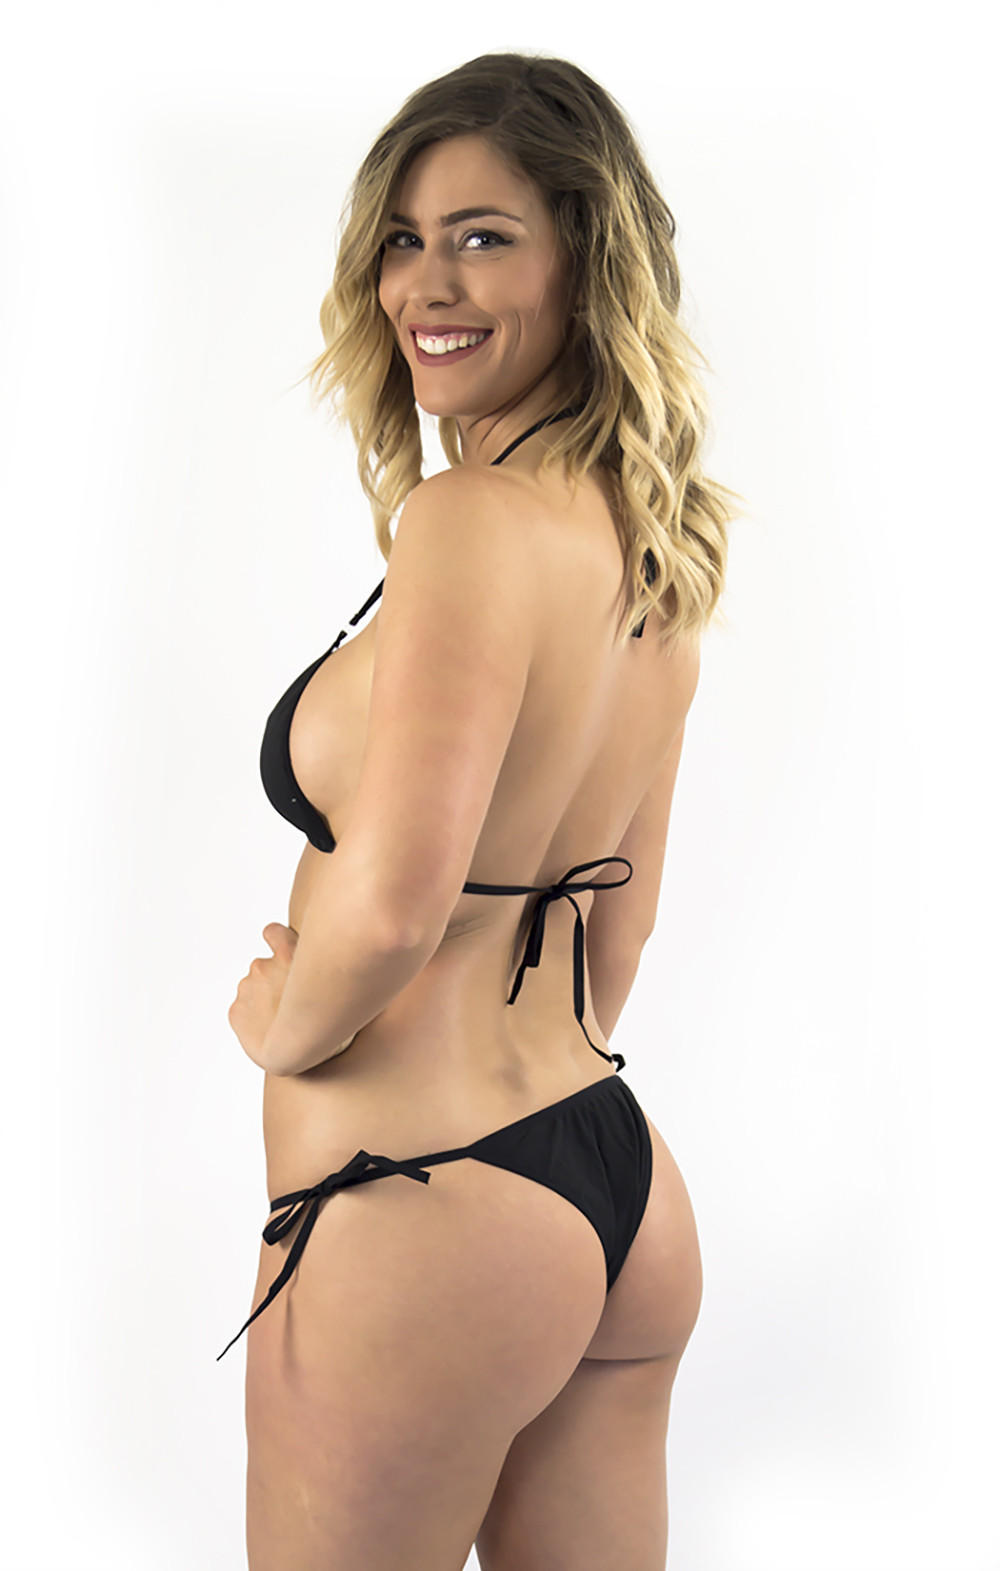 f1cde3fc896 Black Triangle Tops String Bikini thong bottom. $23.60 from LENA STYLE.  Save Buy